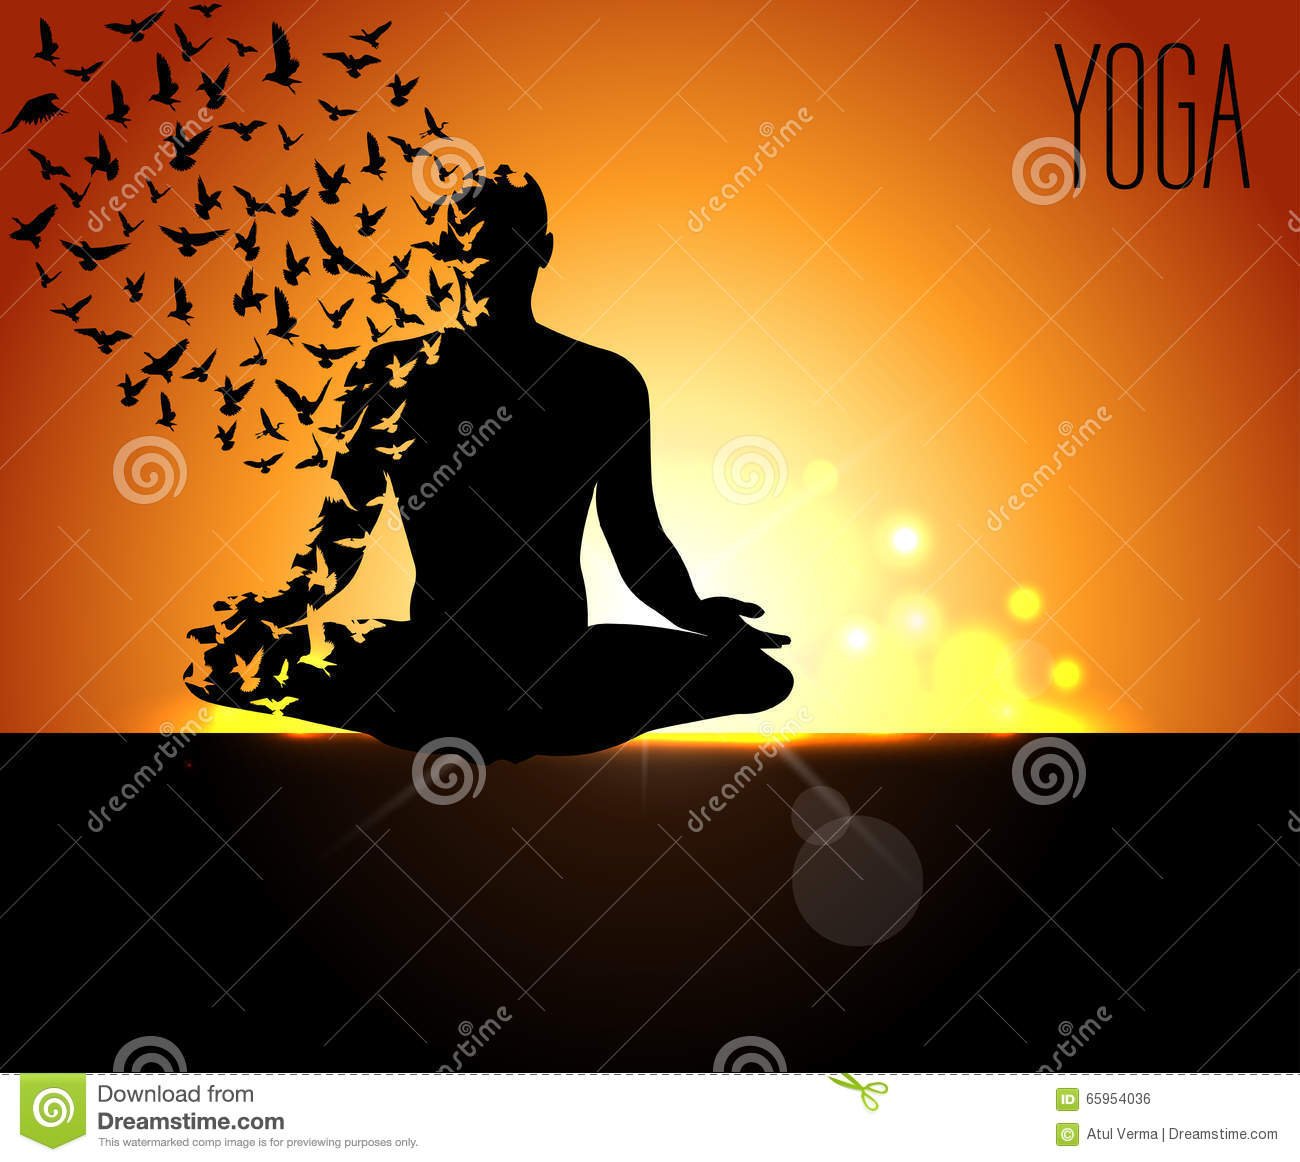 Download Poster Design For Celebrating International Yoga Day Pose With Birds Flying And Early